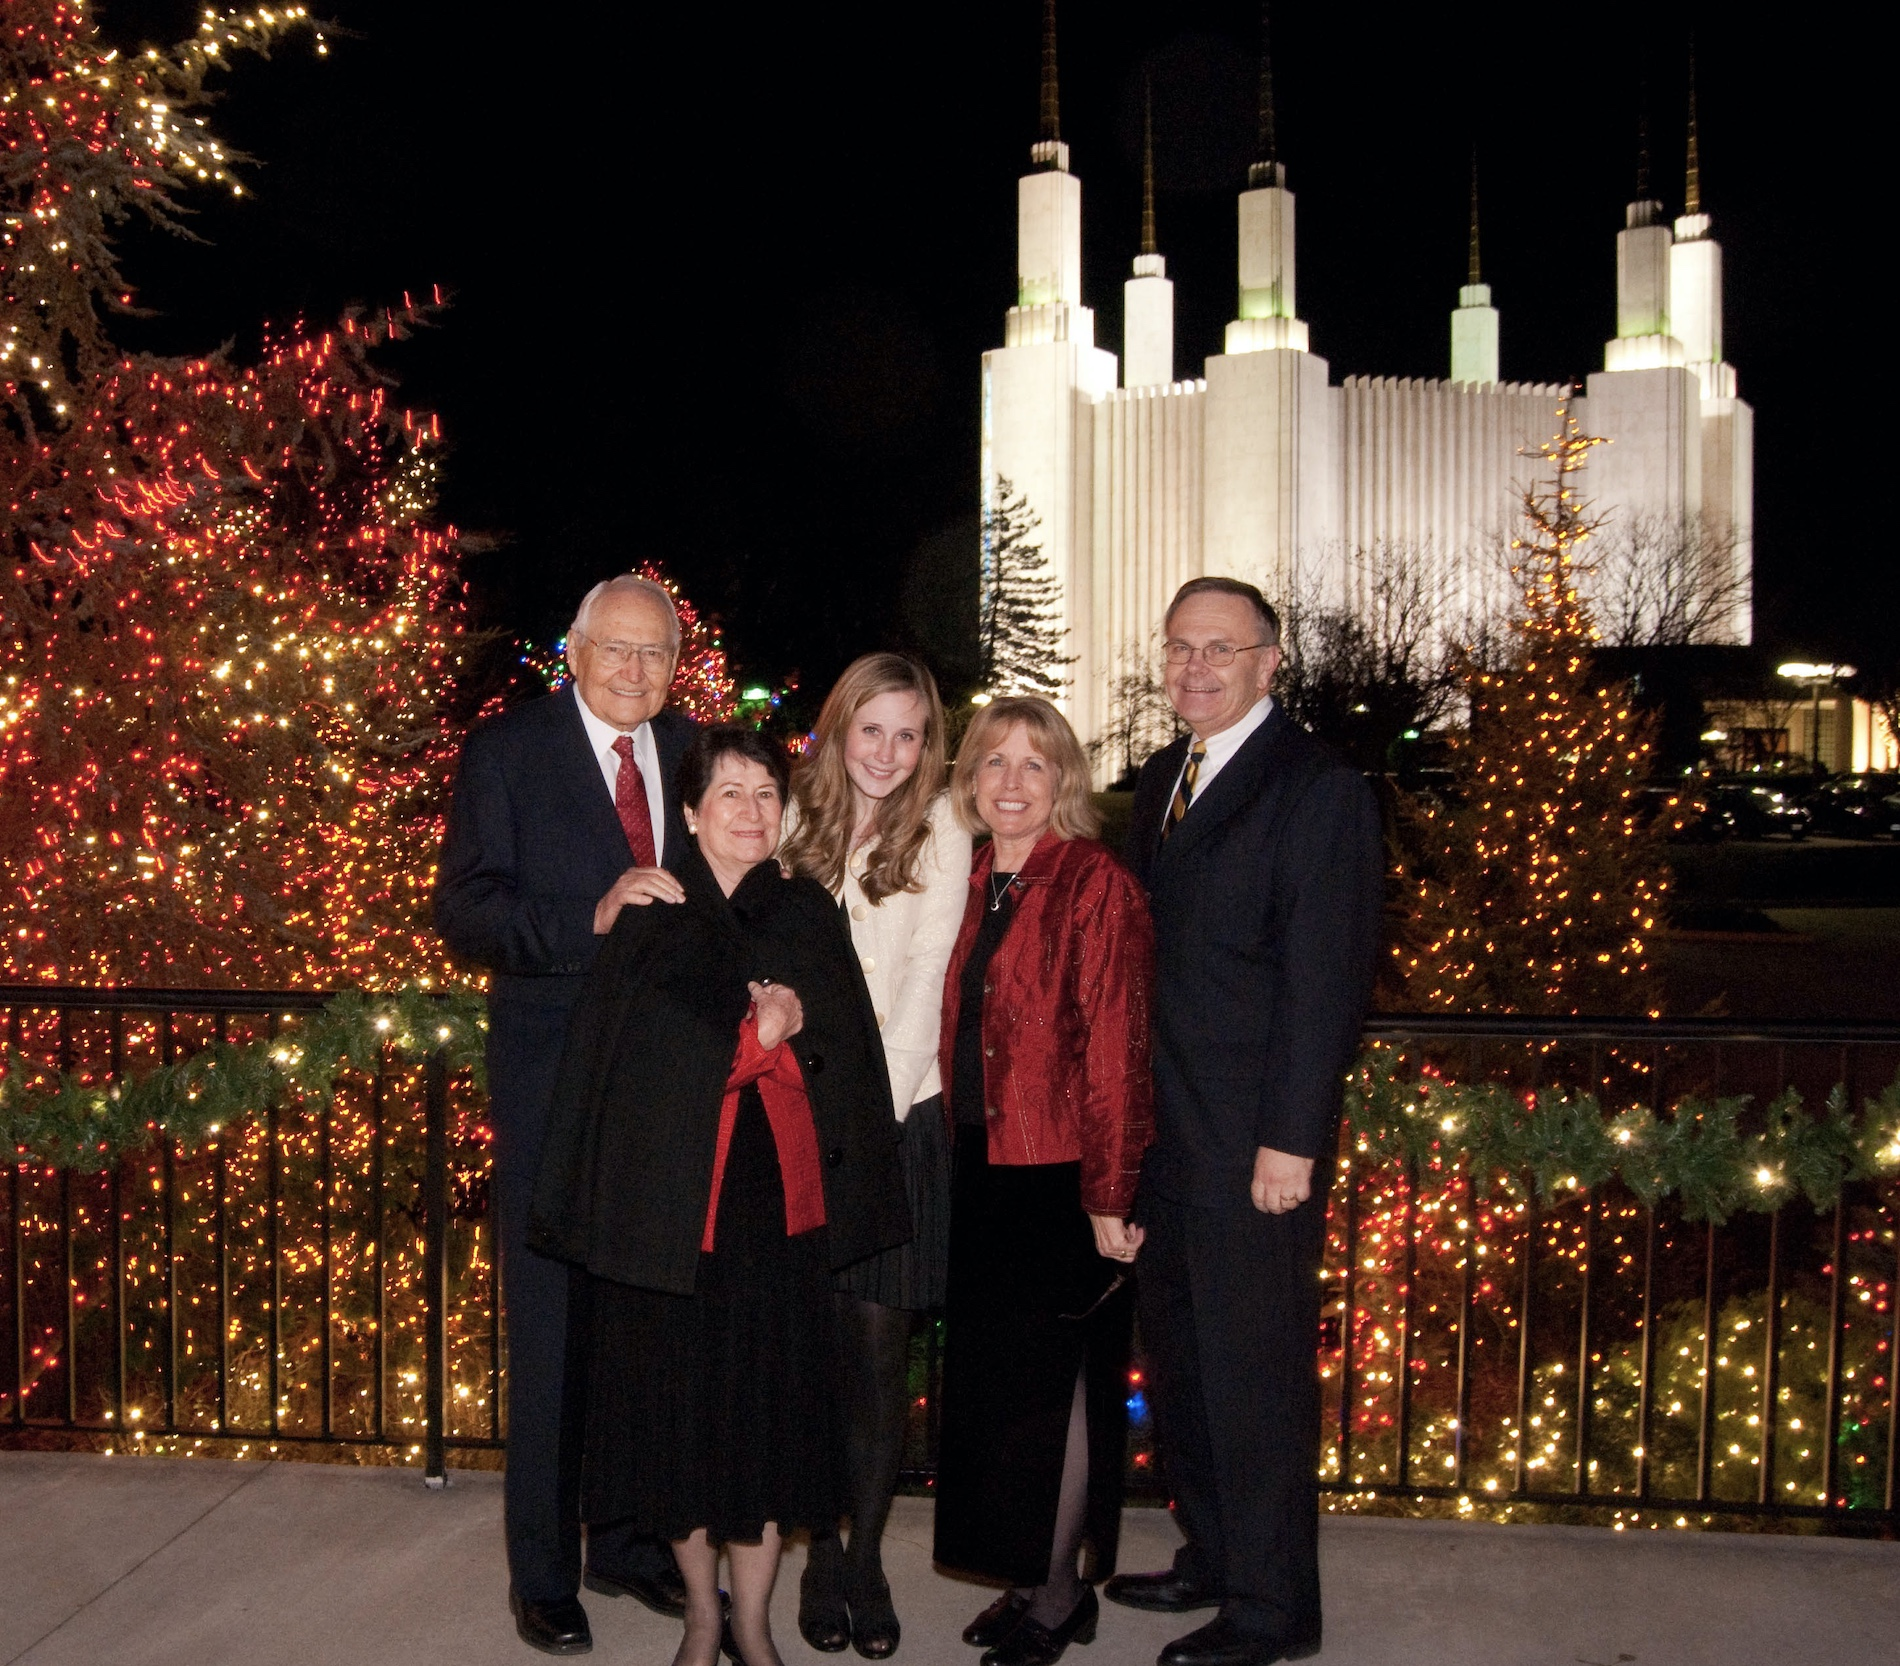 Elder Perry, Sister Perry, Rachel, Carolyn and Lee Perry at the Washington D.C. Temple in December 2012.